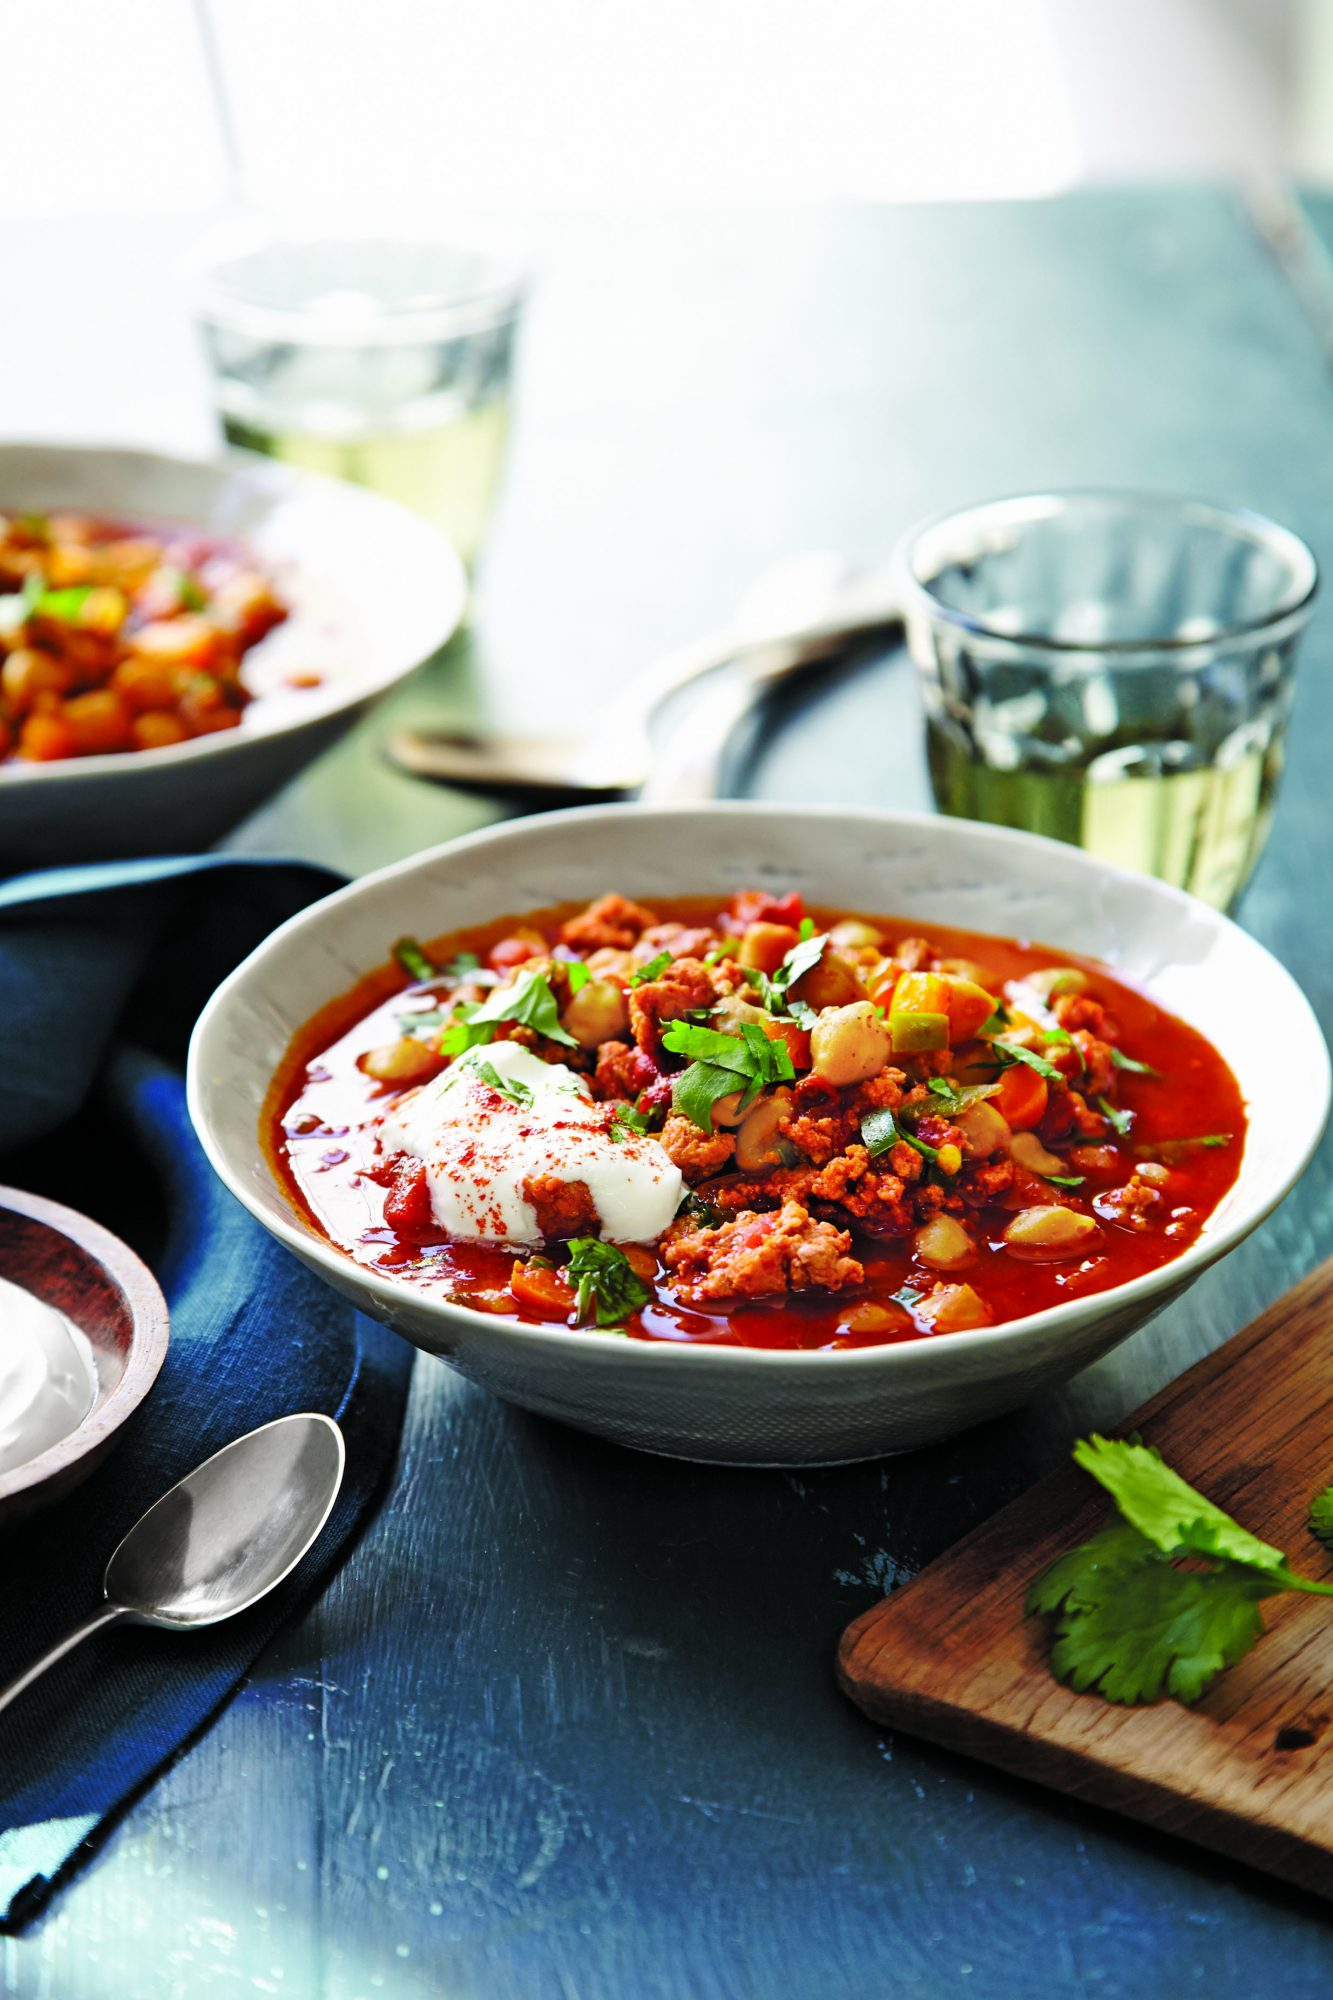 Spiced Turkey-Chickpea Chili